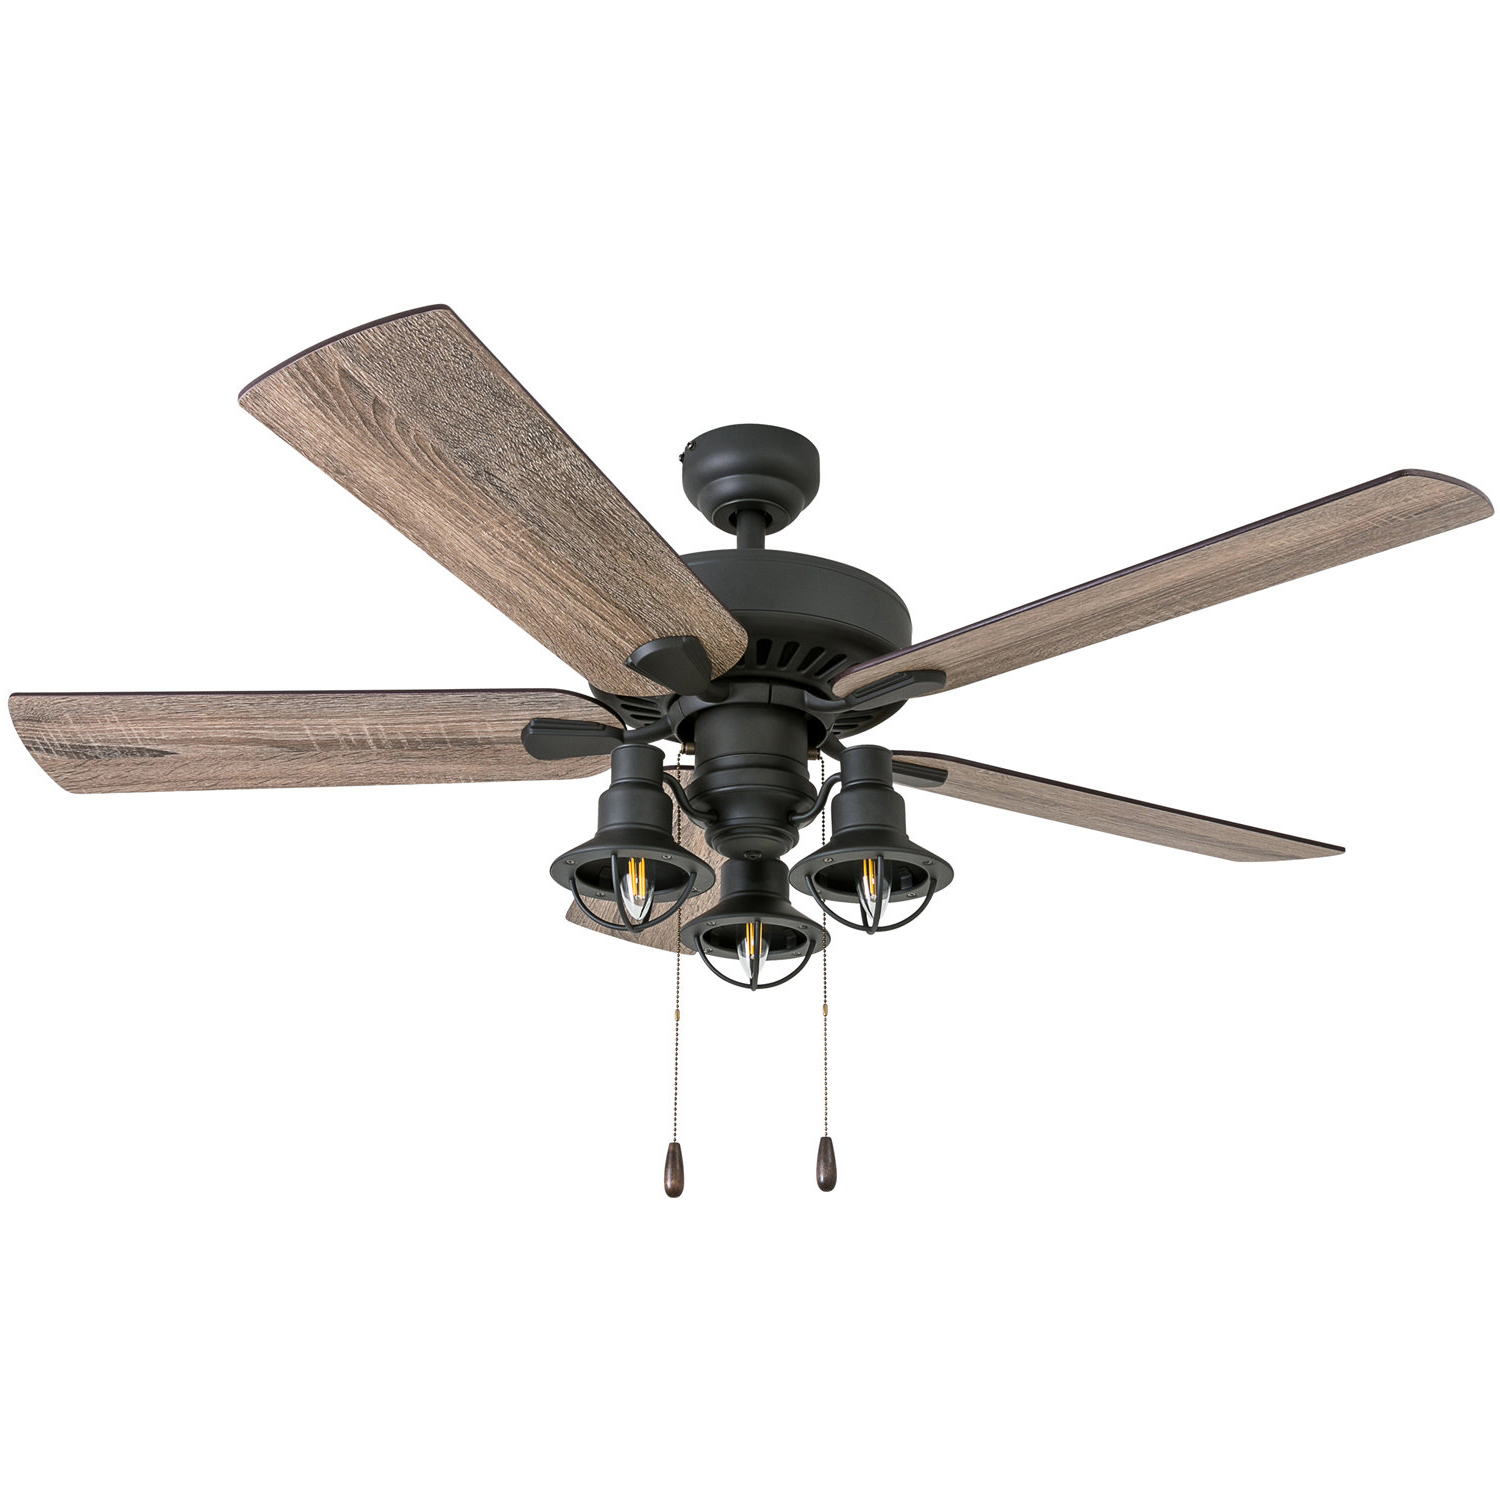 "Current 52"" Ravello 5 Blade Led Ceiling Fan, Light Kit Included With Regard To Kyla 5 Blade Ceiling Fans (View 14 of 20)"